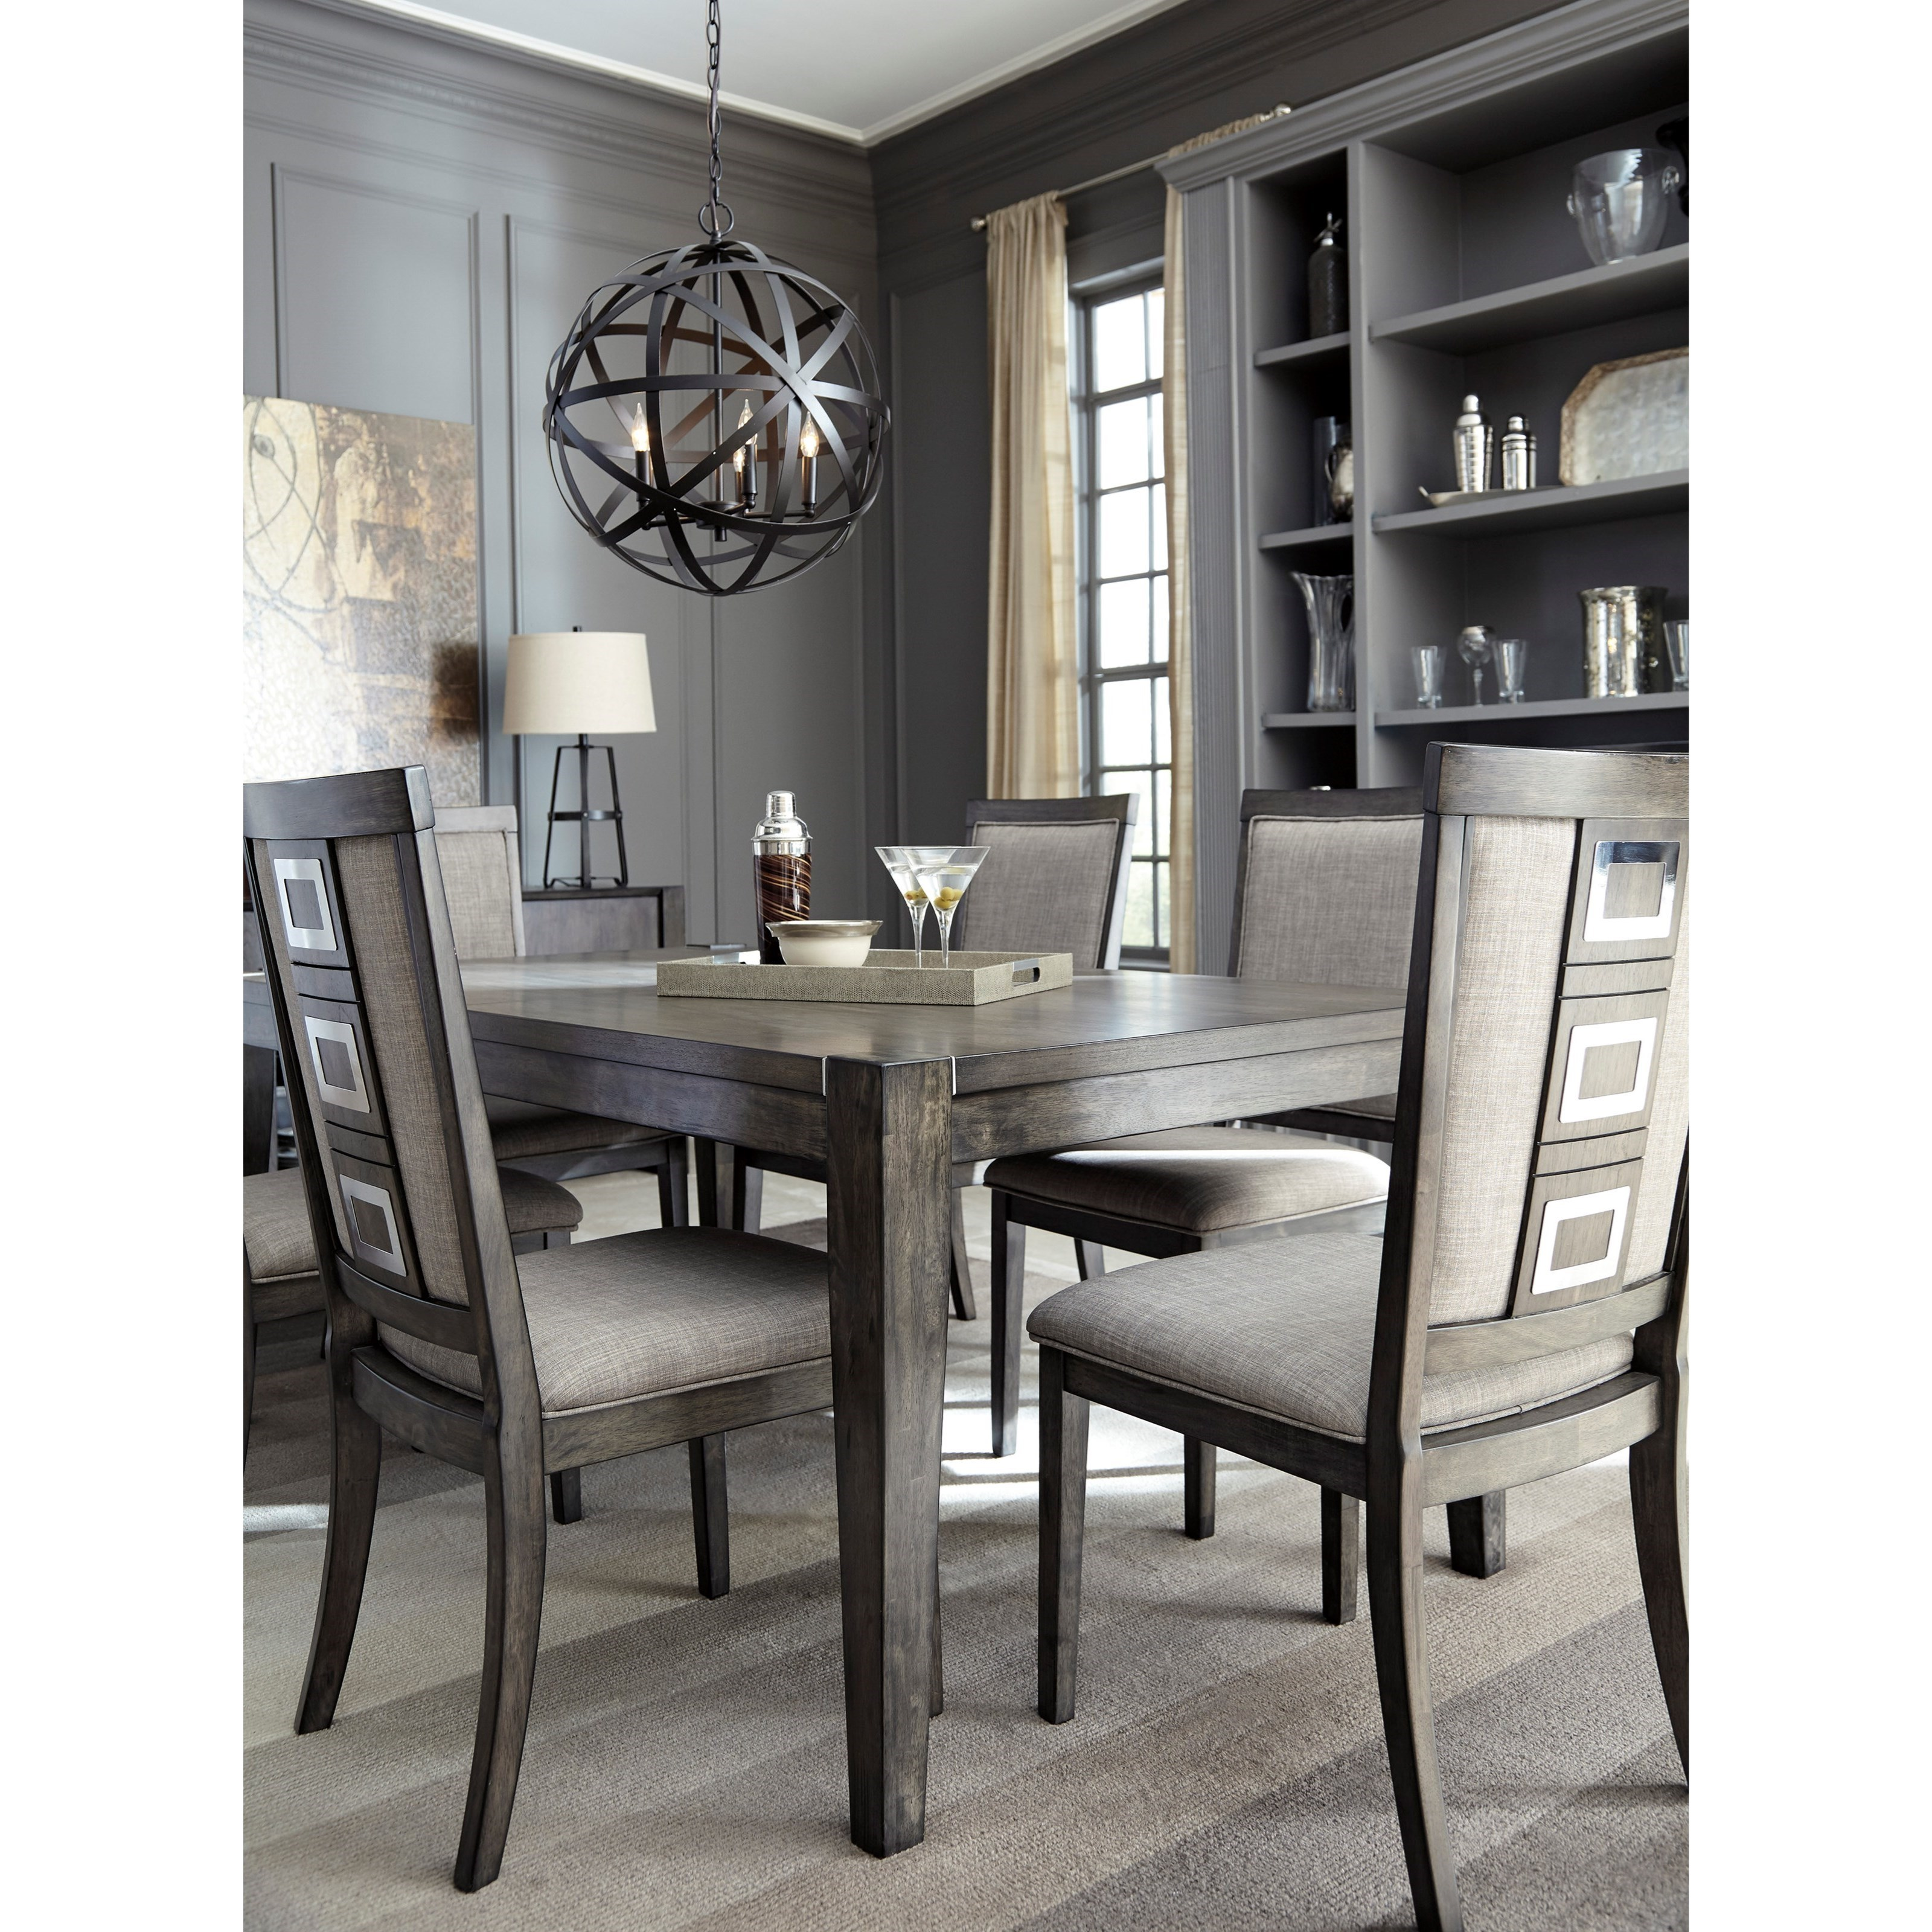 Signature design by ashley chadoni d624 35 contemporary for Rectangular dining room tables with leaves